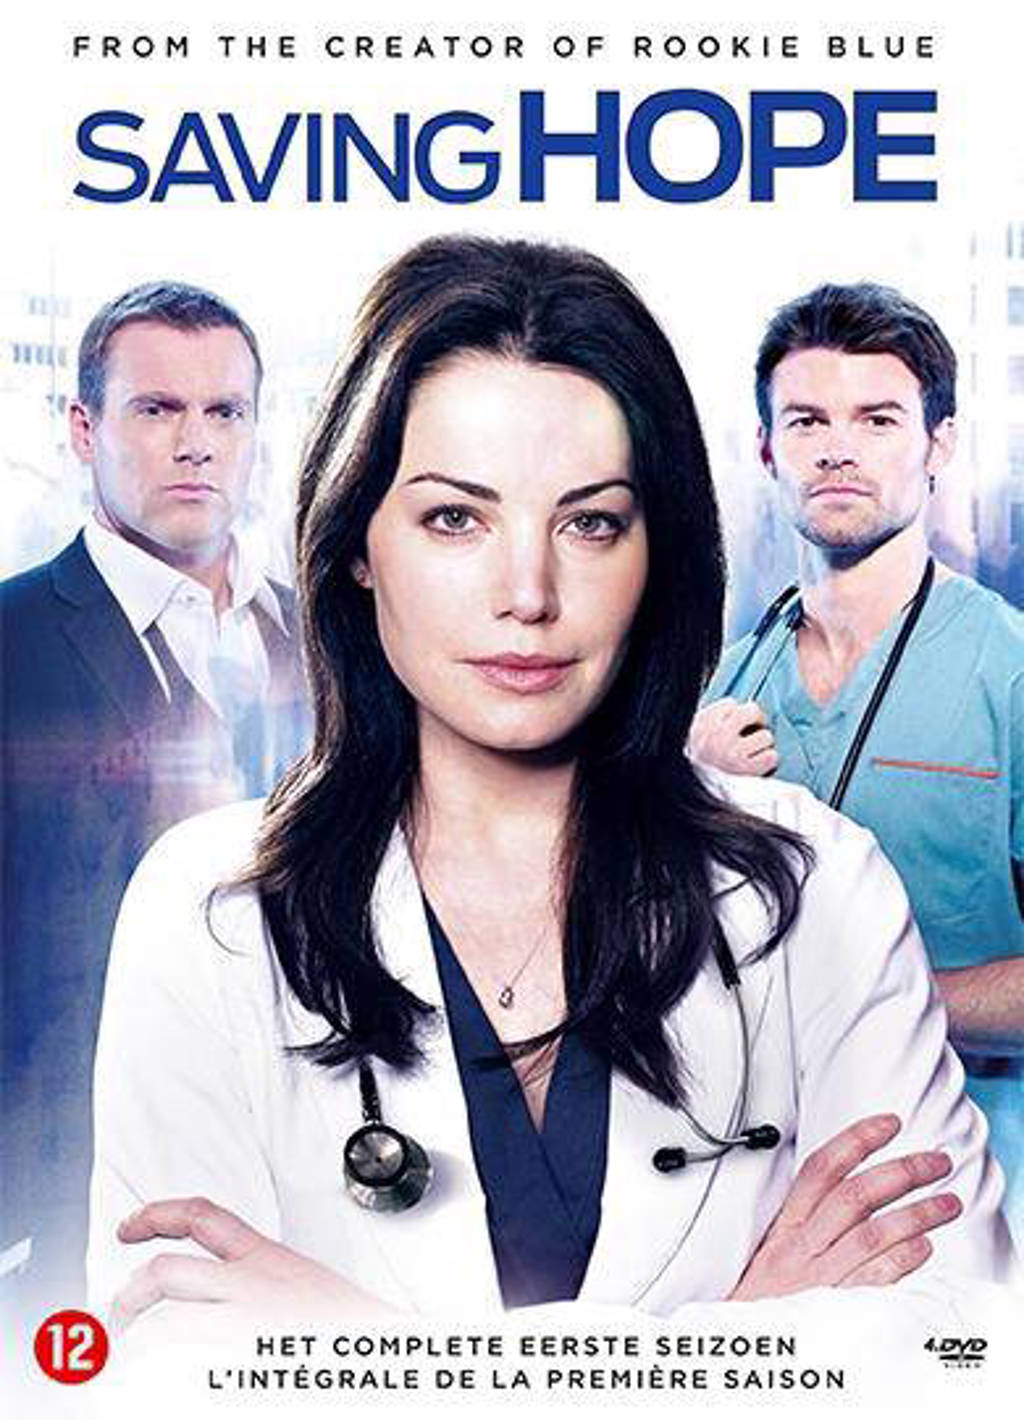 Saving hope - Seizoen 1  (DVD)